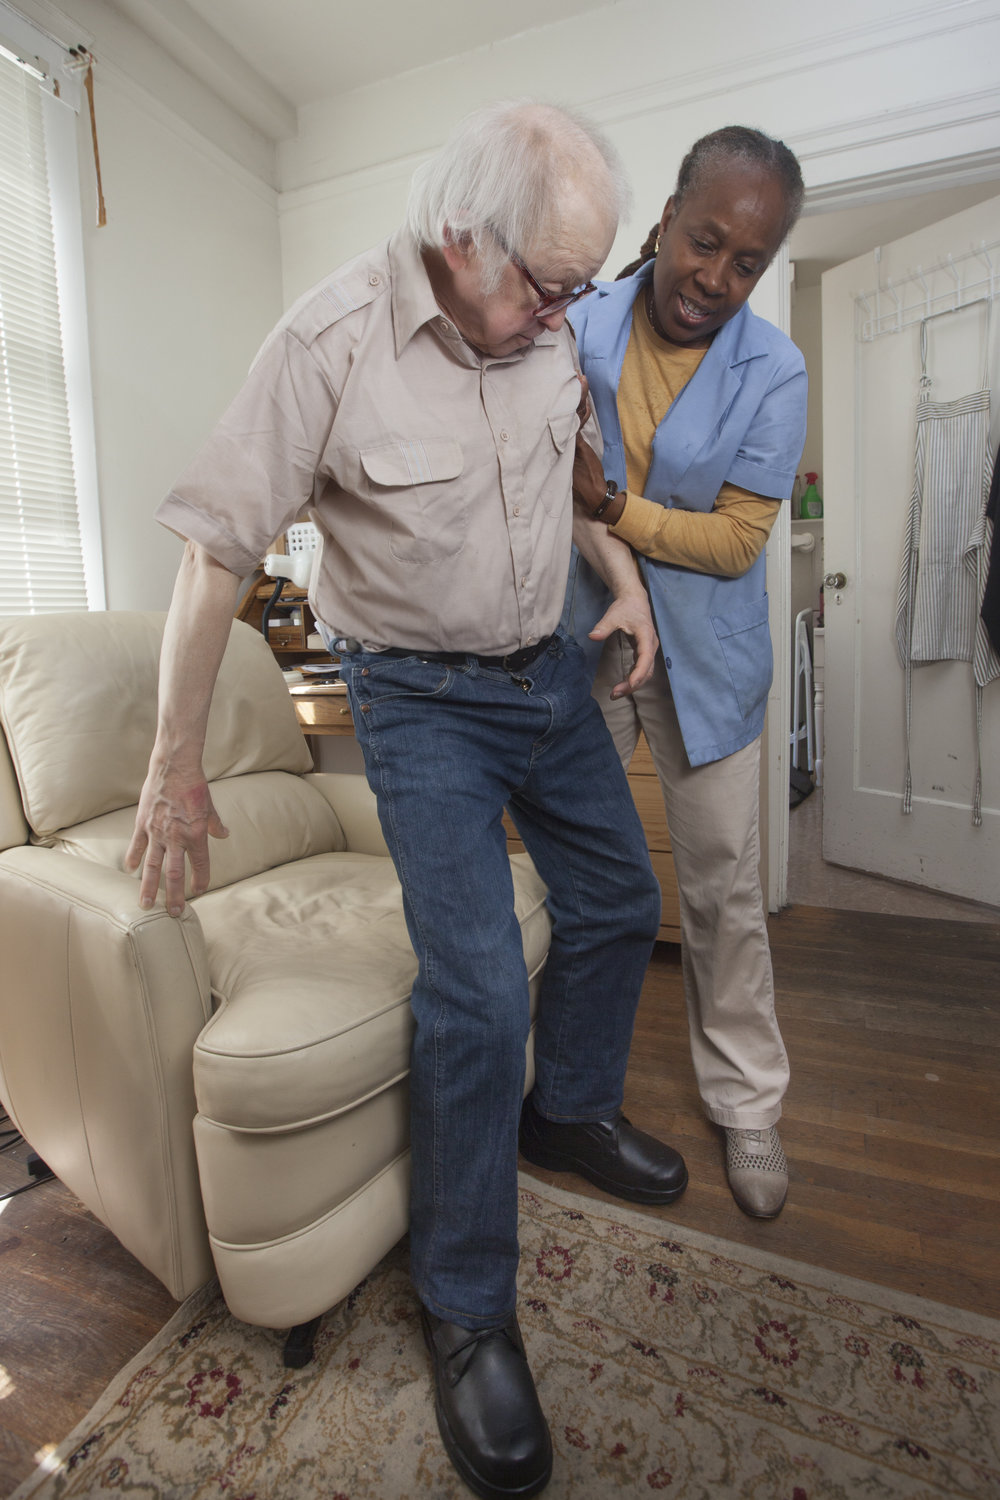 A personal care assistant help a man out of a reclining chair.